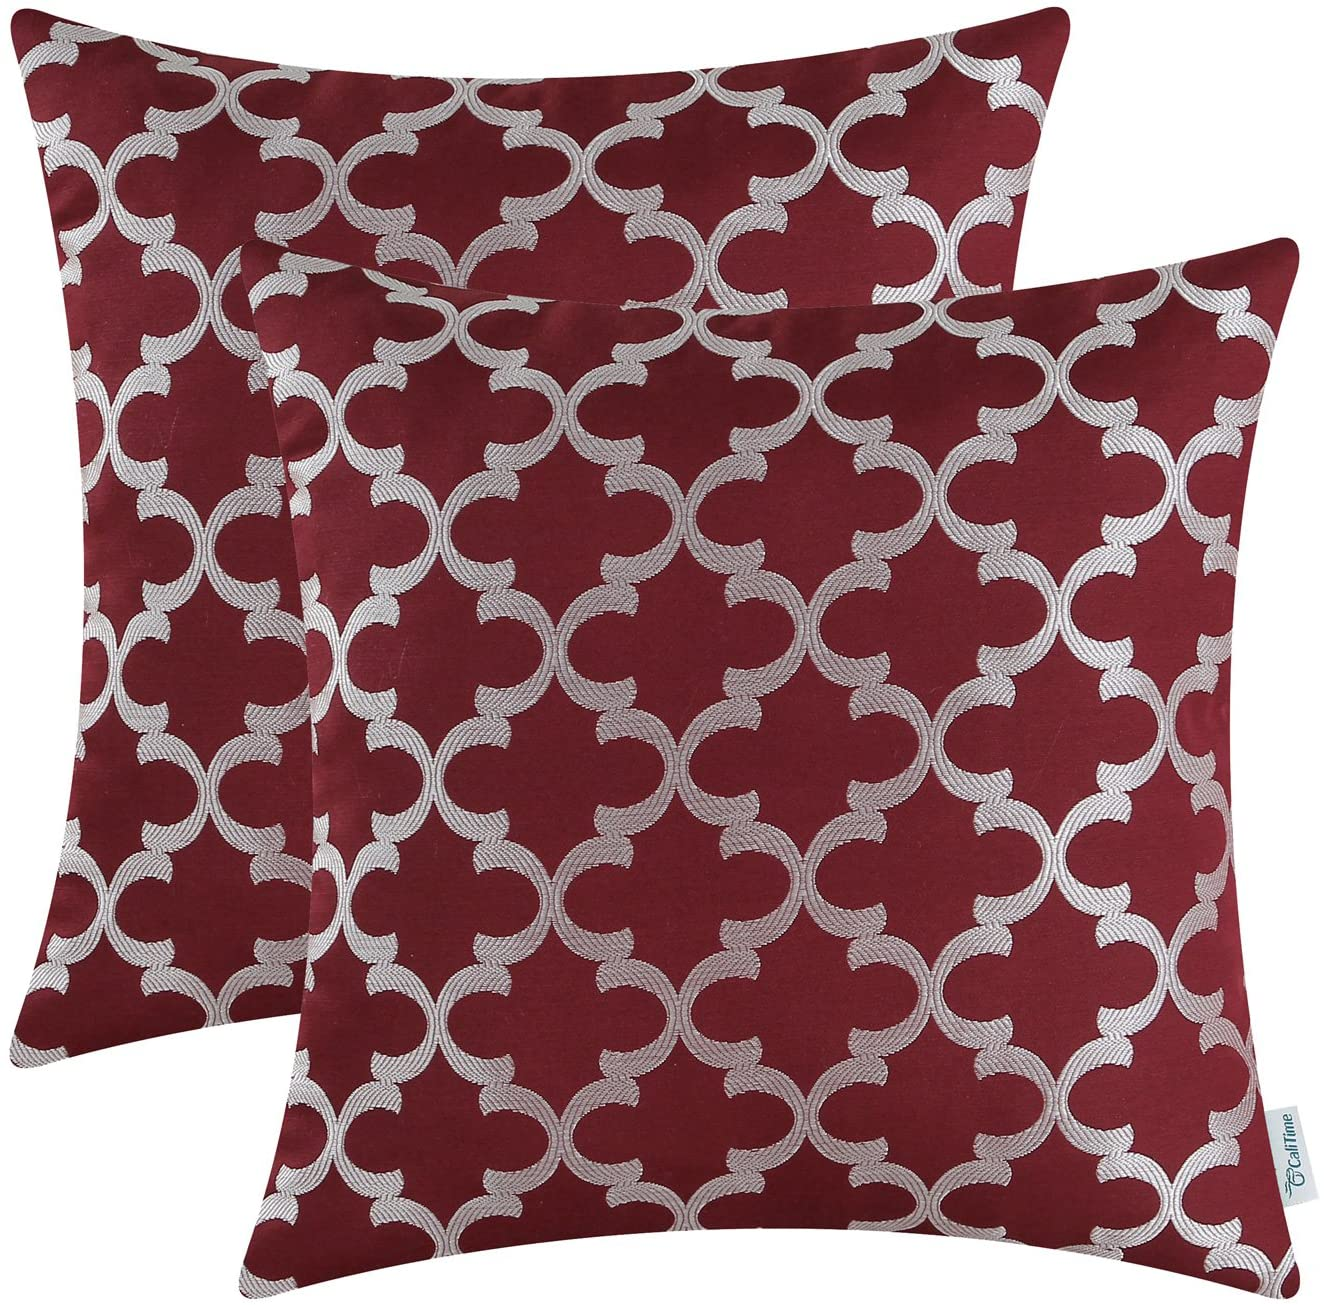 CaliTime Pack of 2 Soft Throw Pillow Covers Cases for Couch Sofa Home Decoration Modern Quatrefoil Trellis Geometric 18 X 18 Inches Burgundy